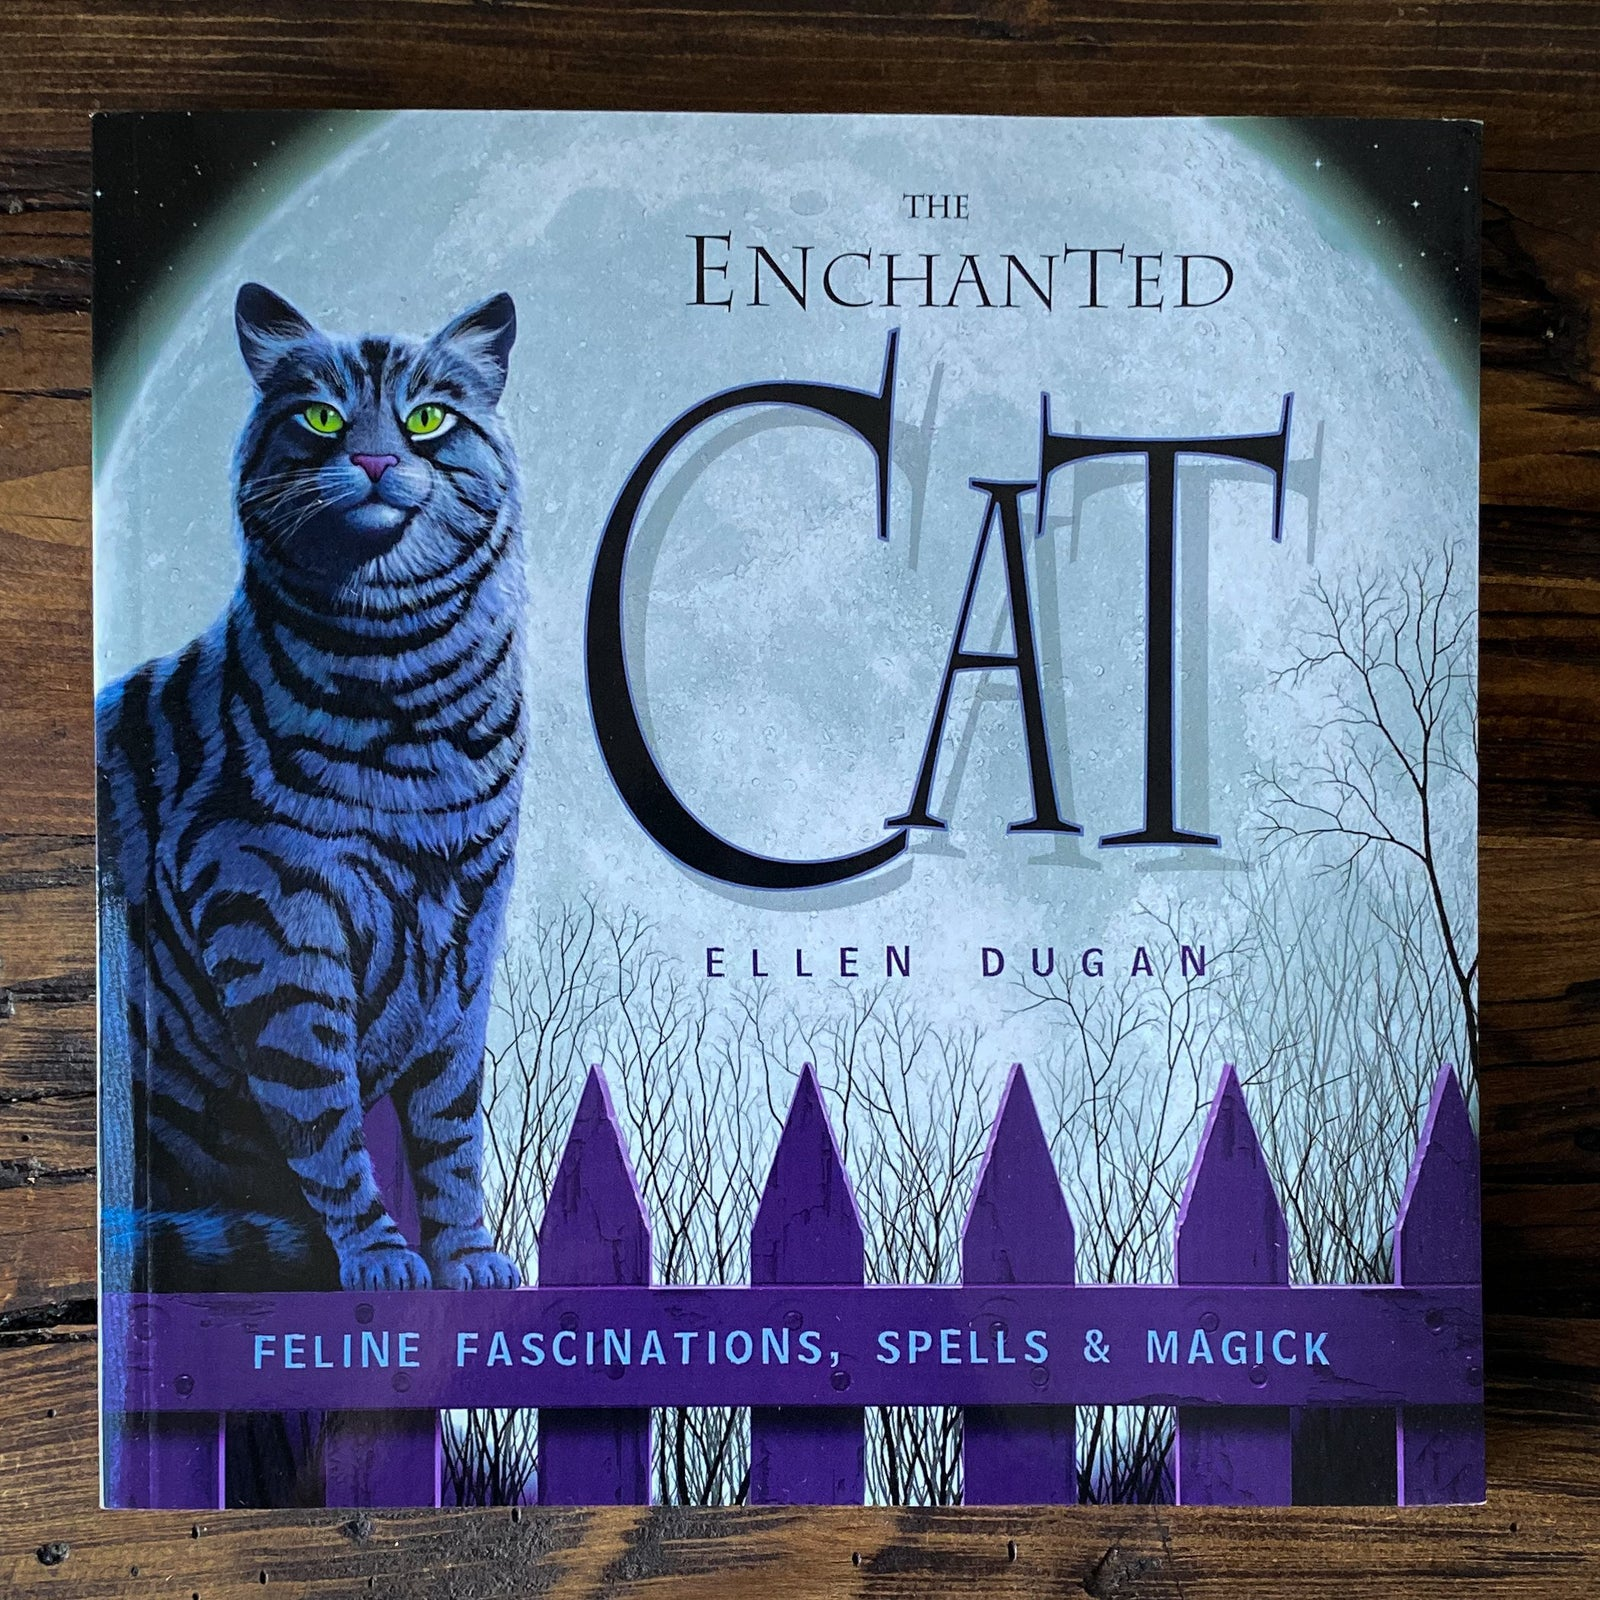 The Enchanted Cat - Feline Fascinations, Spells & Magick